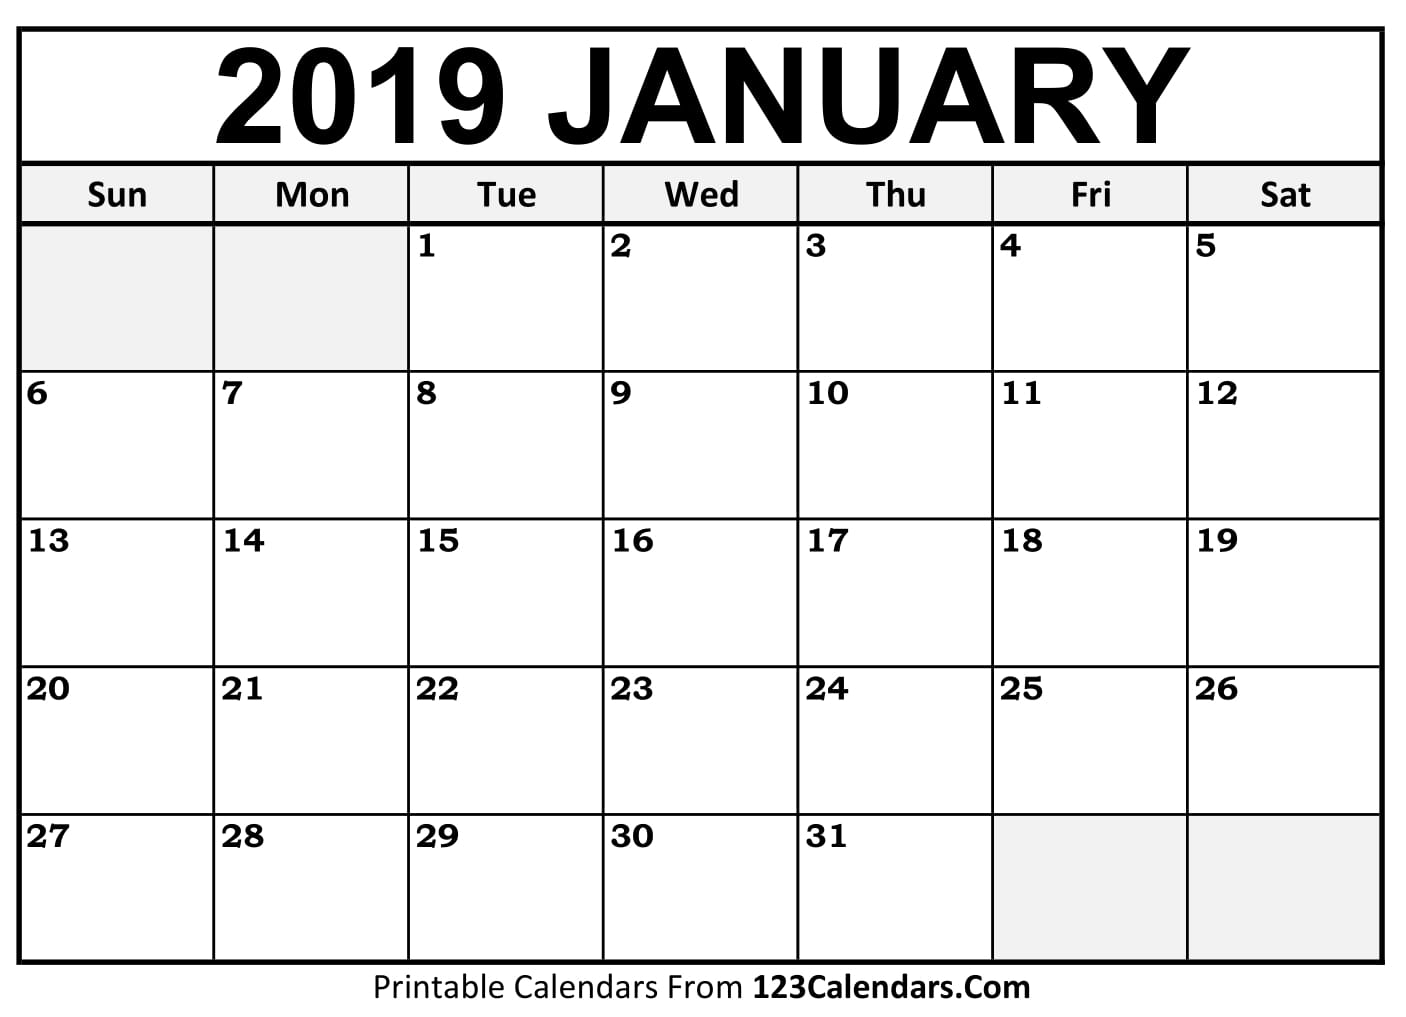 image relating to Printable Calendars named No cost Printable Calendar